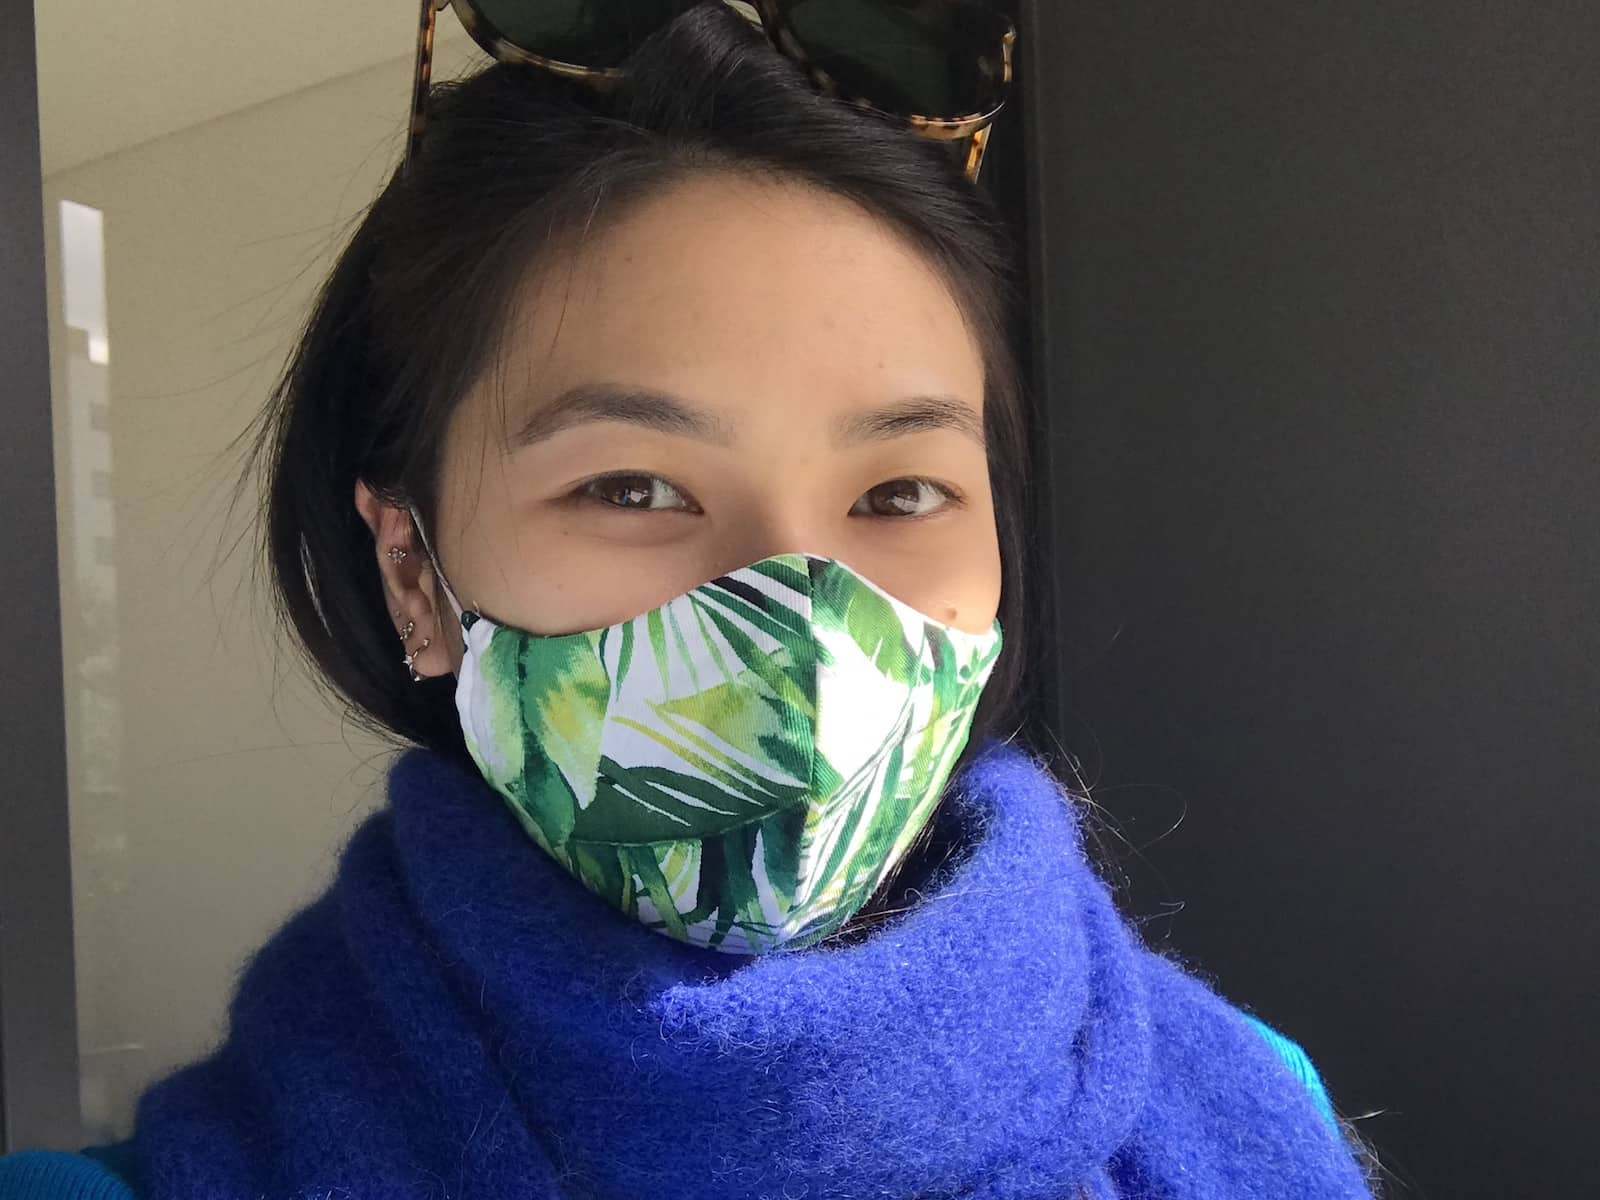 A woman with dark hair wearing a blue scarf and a white mask with green leaves printed on it